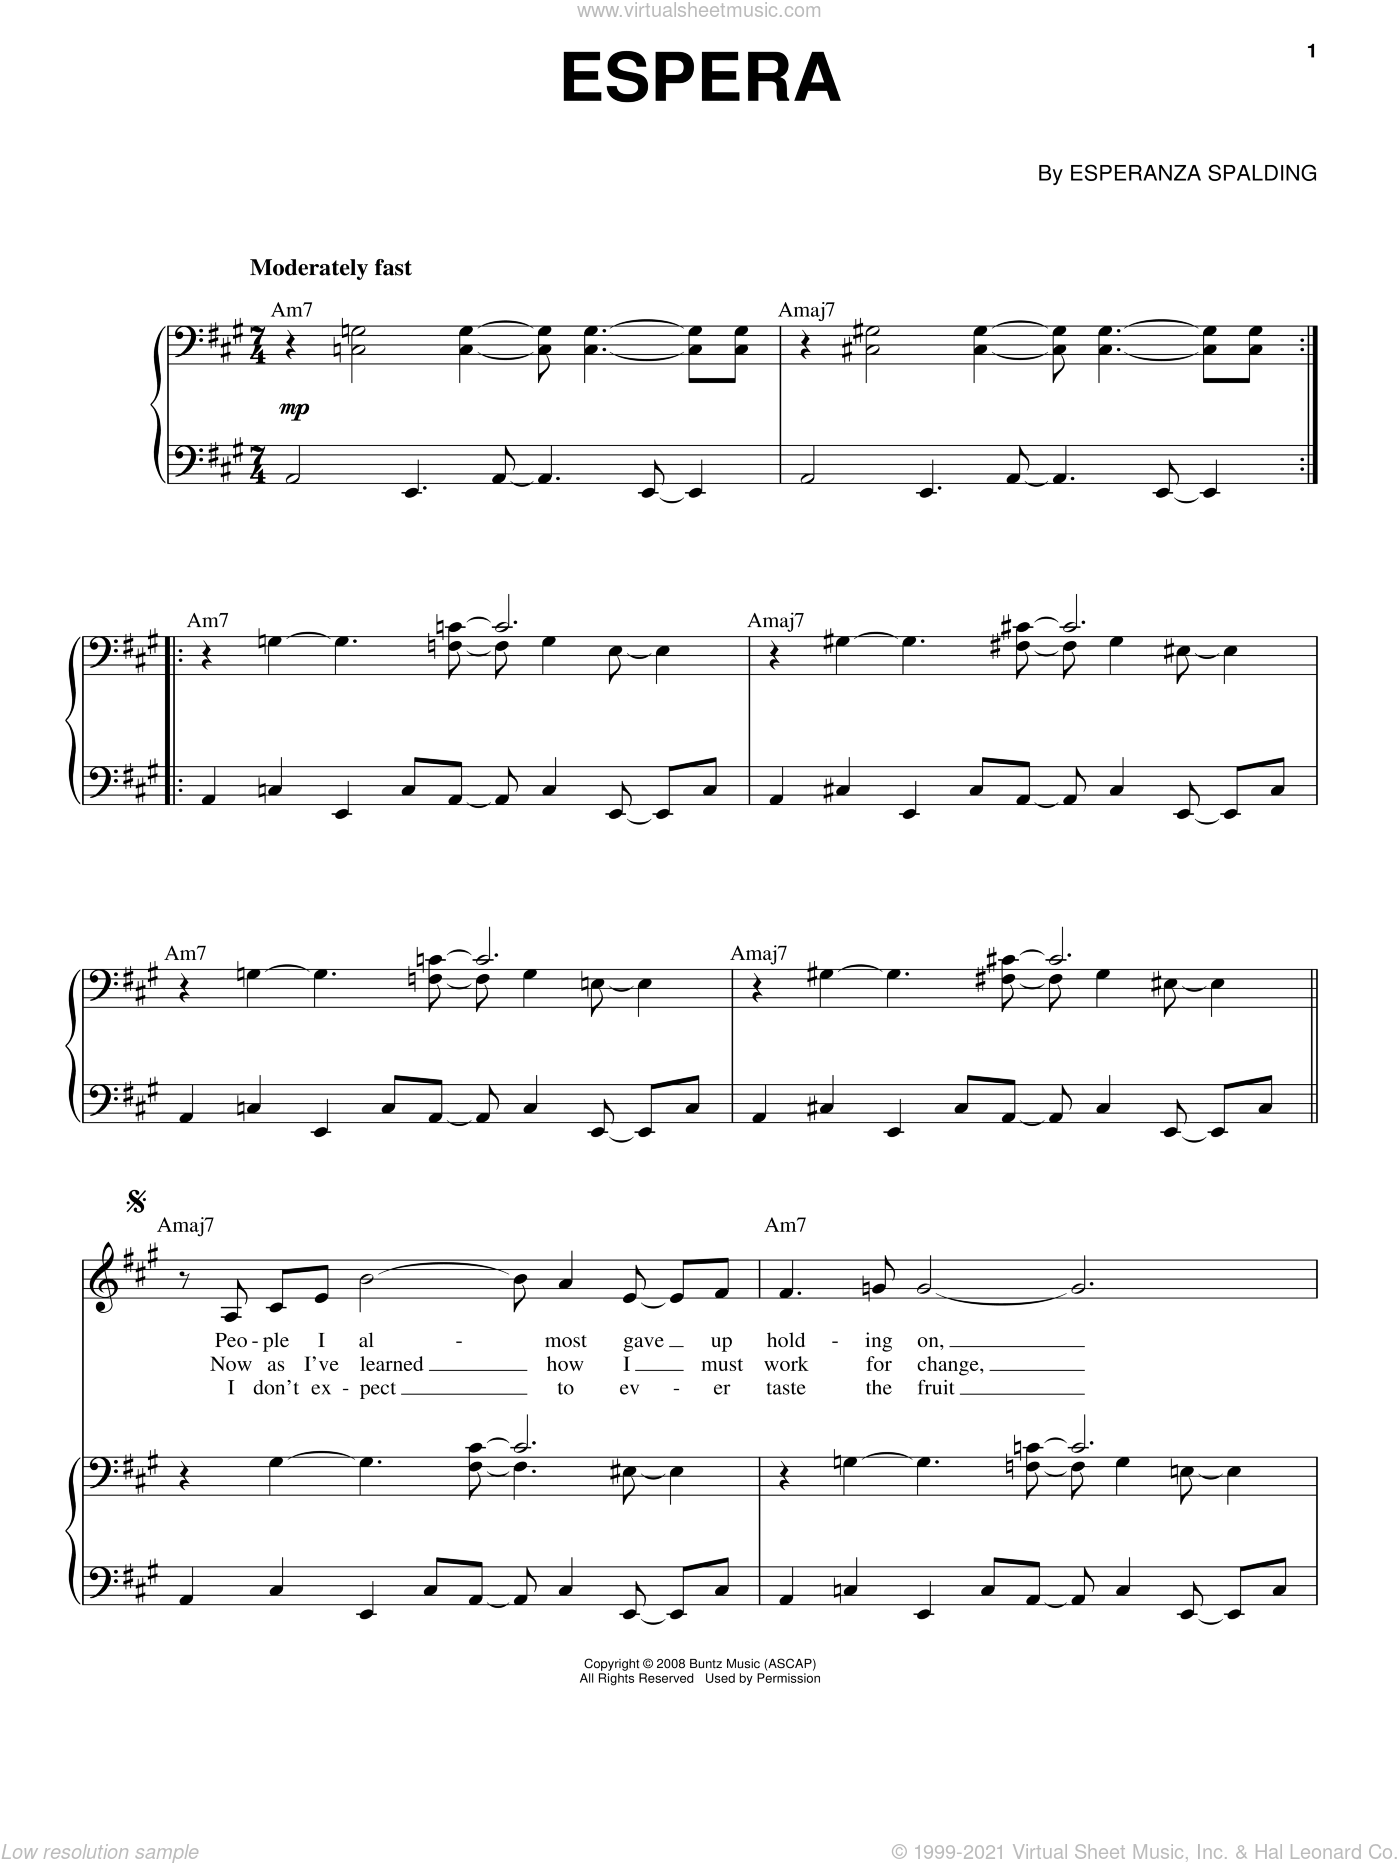 Espera sheet music for voice and piano by Esperanza Spalding, intermediate skill level